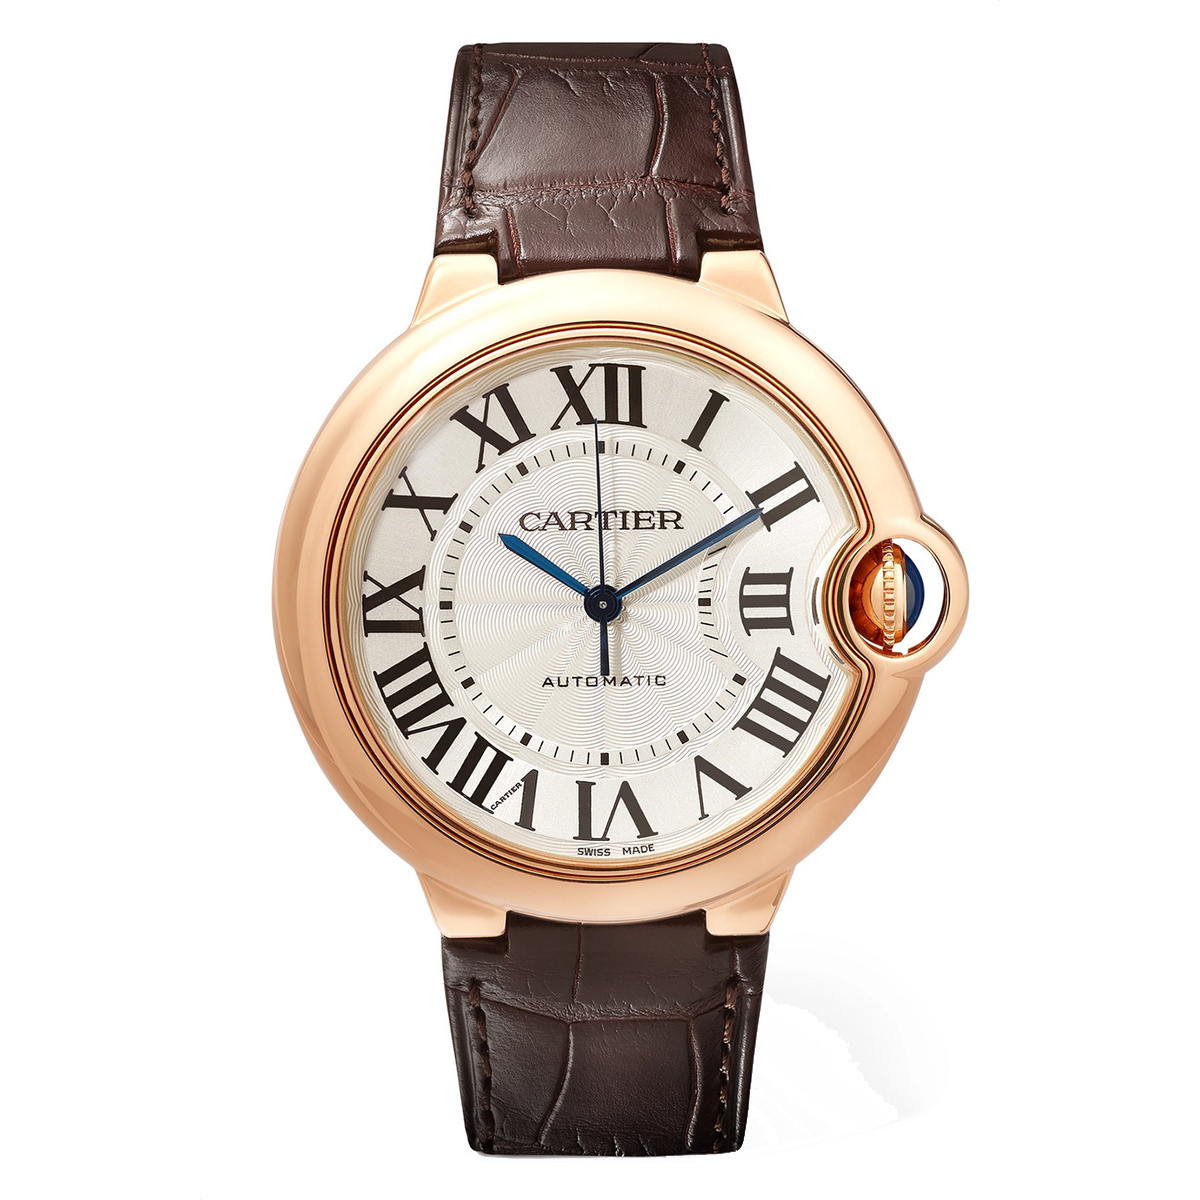 Cartier Ballon Bleu de Cartier Pink Gold Alligator Watch